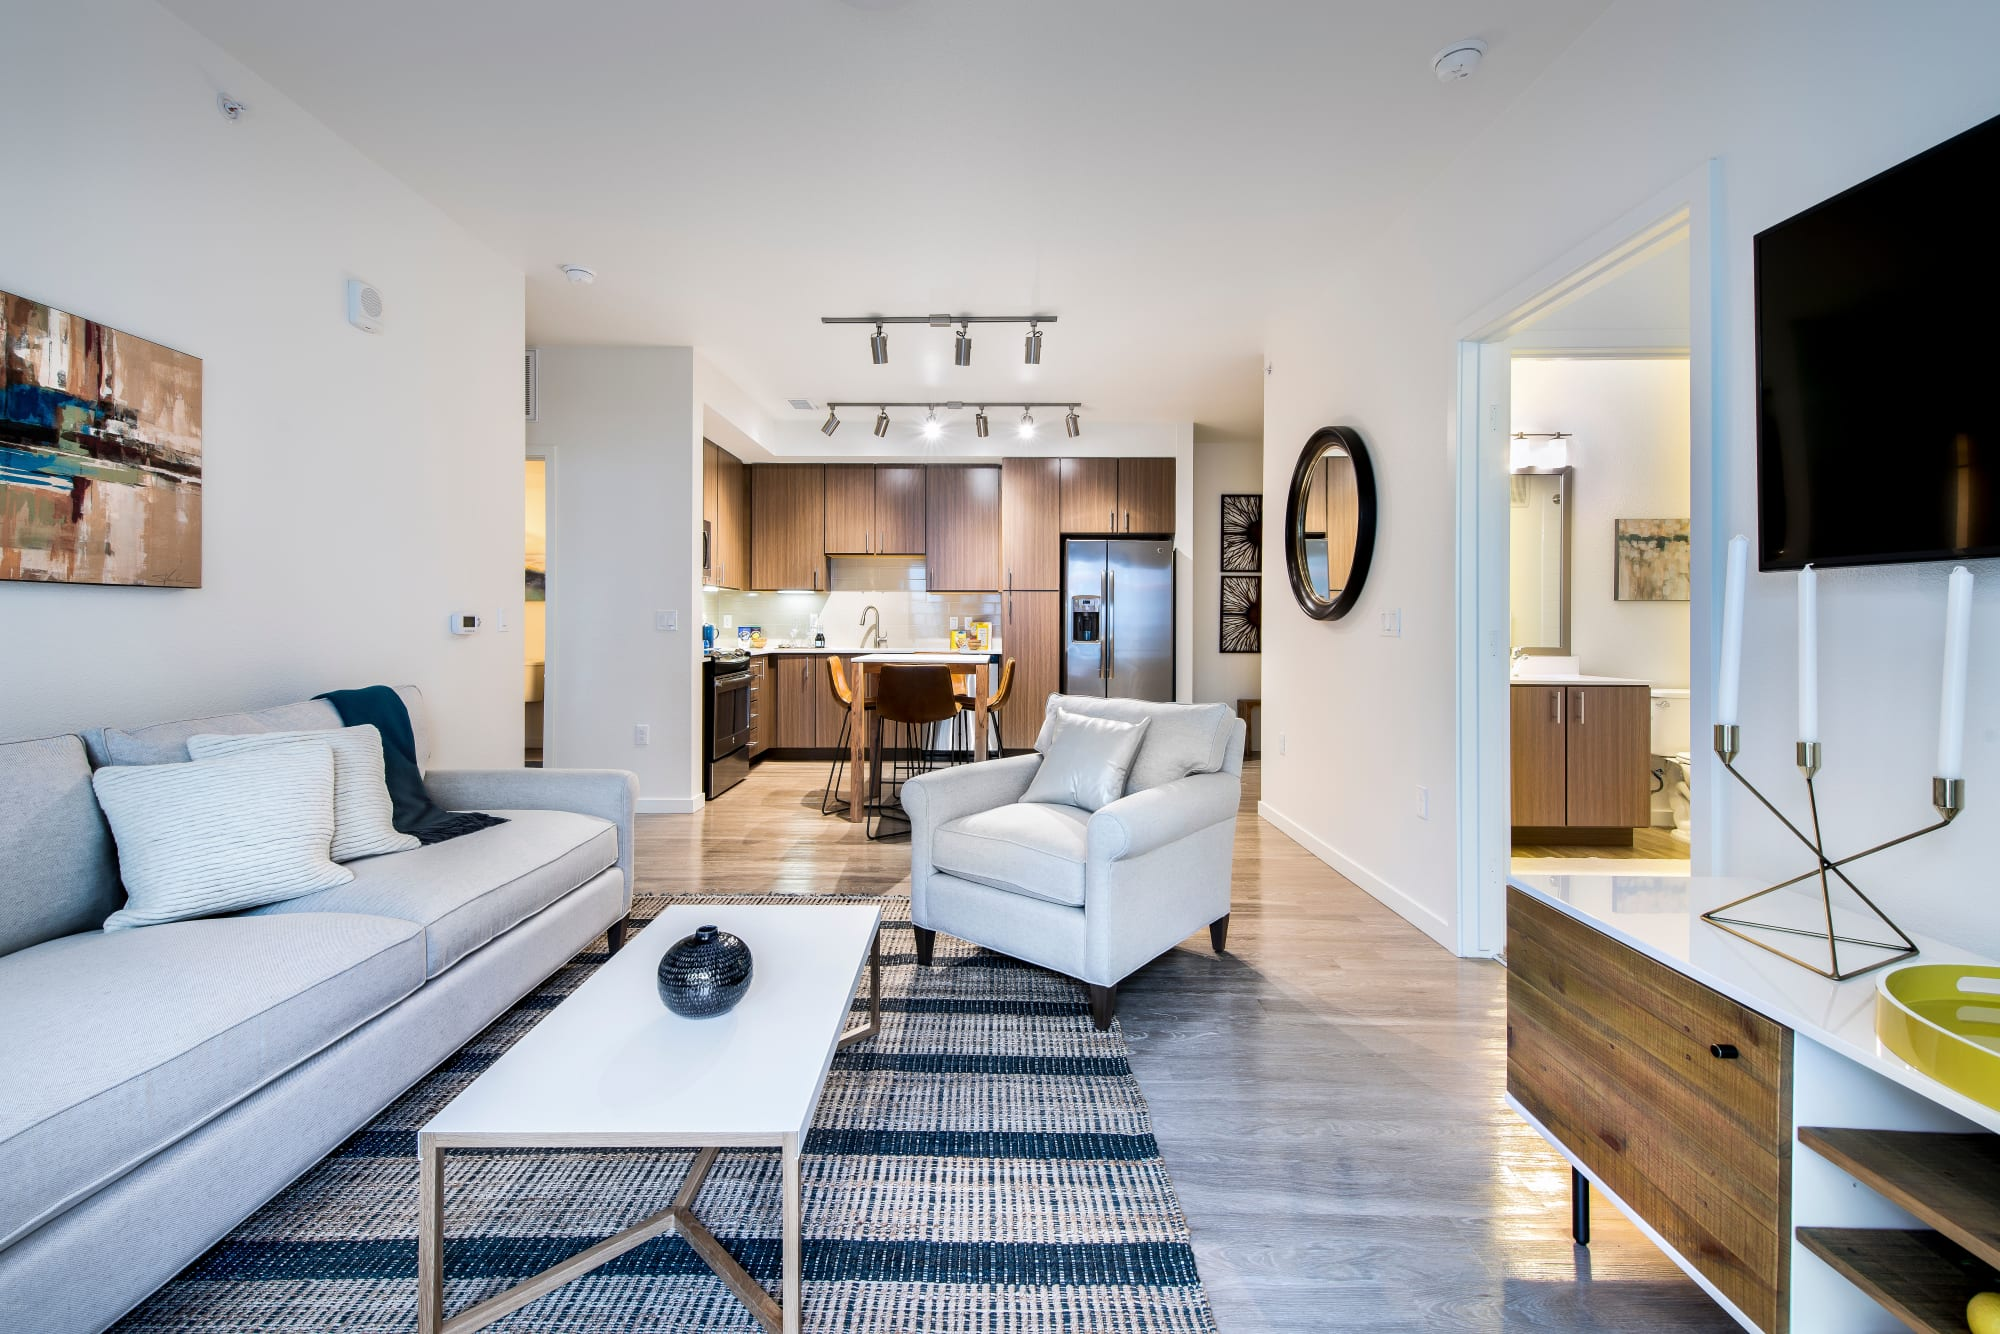 A stylishly furnished apartment at Elevate in Englewood, Colorado